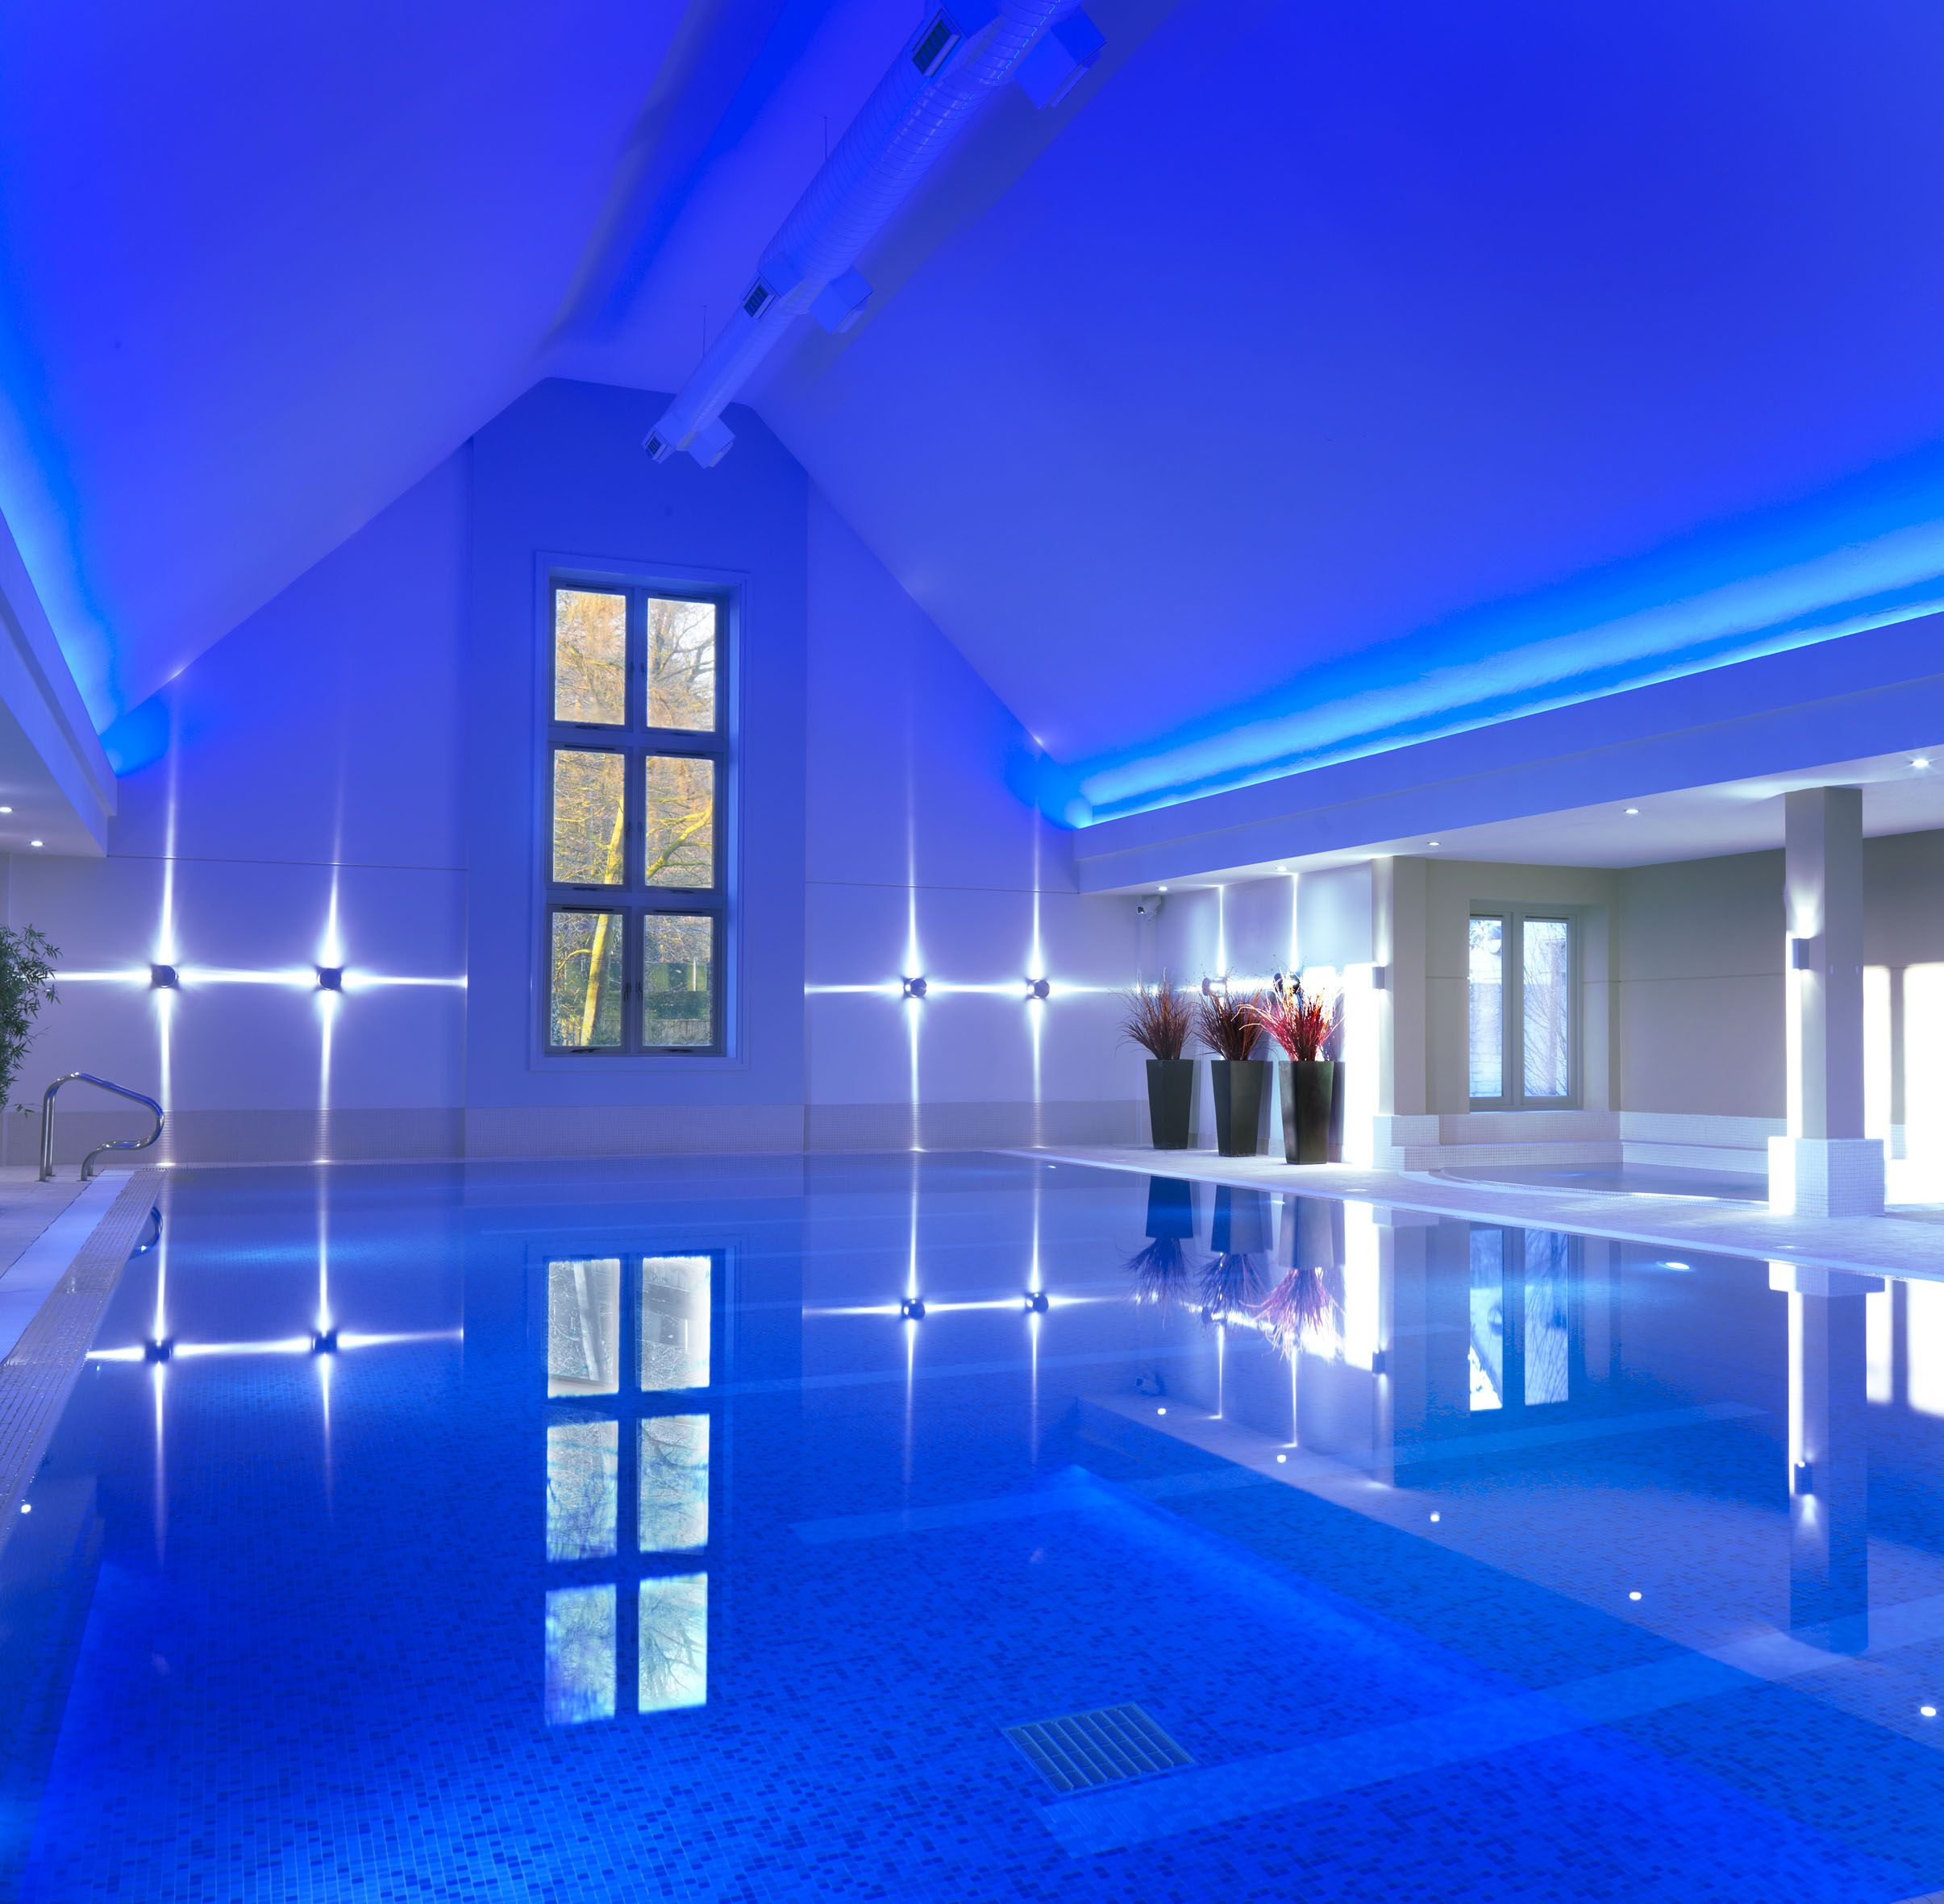 The Indoor Pool At Calcot Spa Calcot Manor Hotel Near Tetbury In The Cotswolds Http Www Calcotmanor Co Uk Calcot Spa Luxury Spa Hotels Hot Tub Outdoor Manor